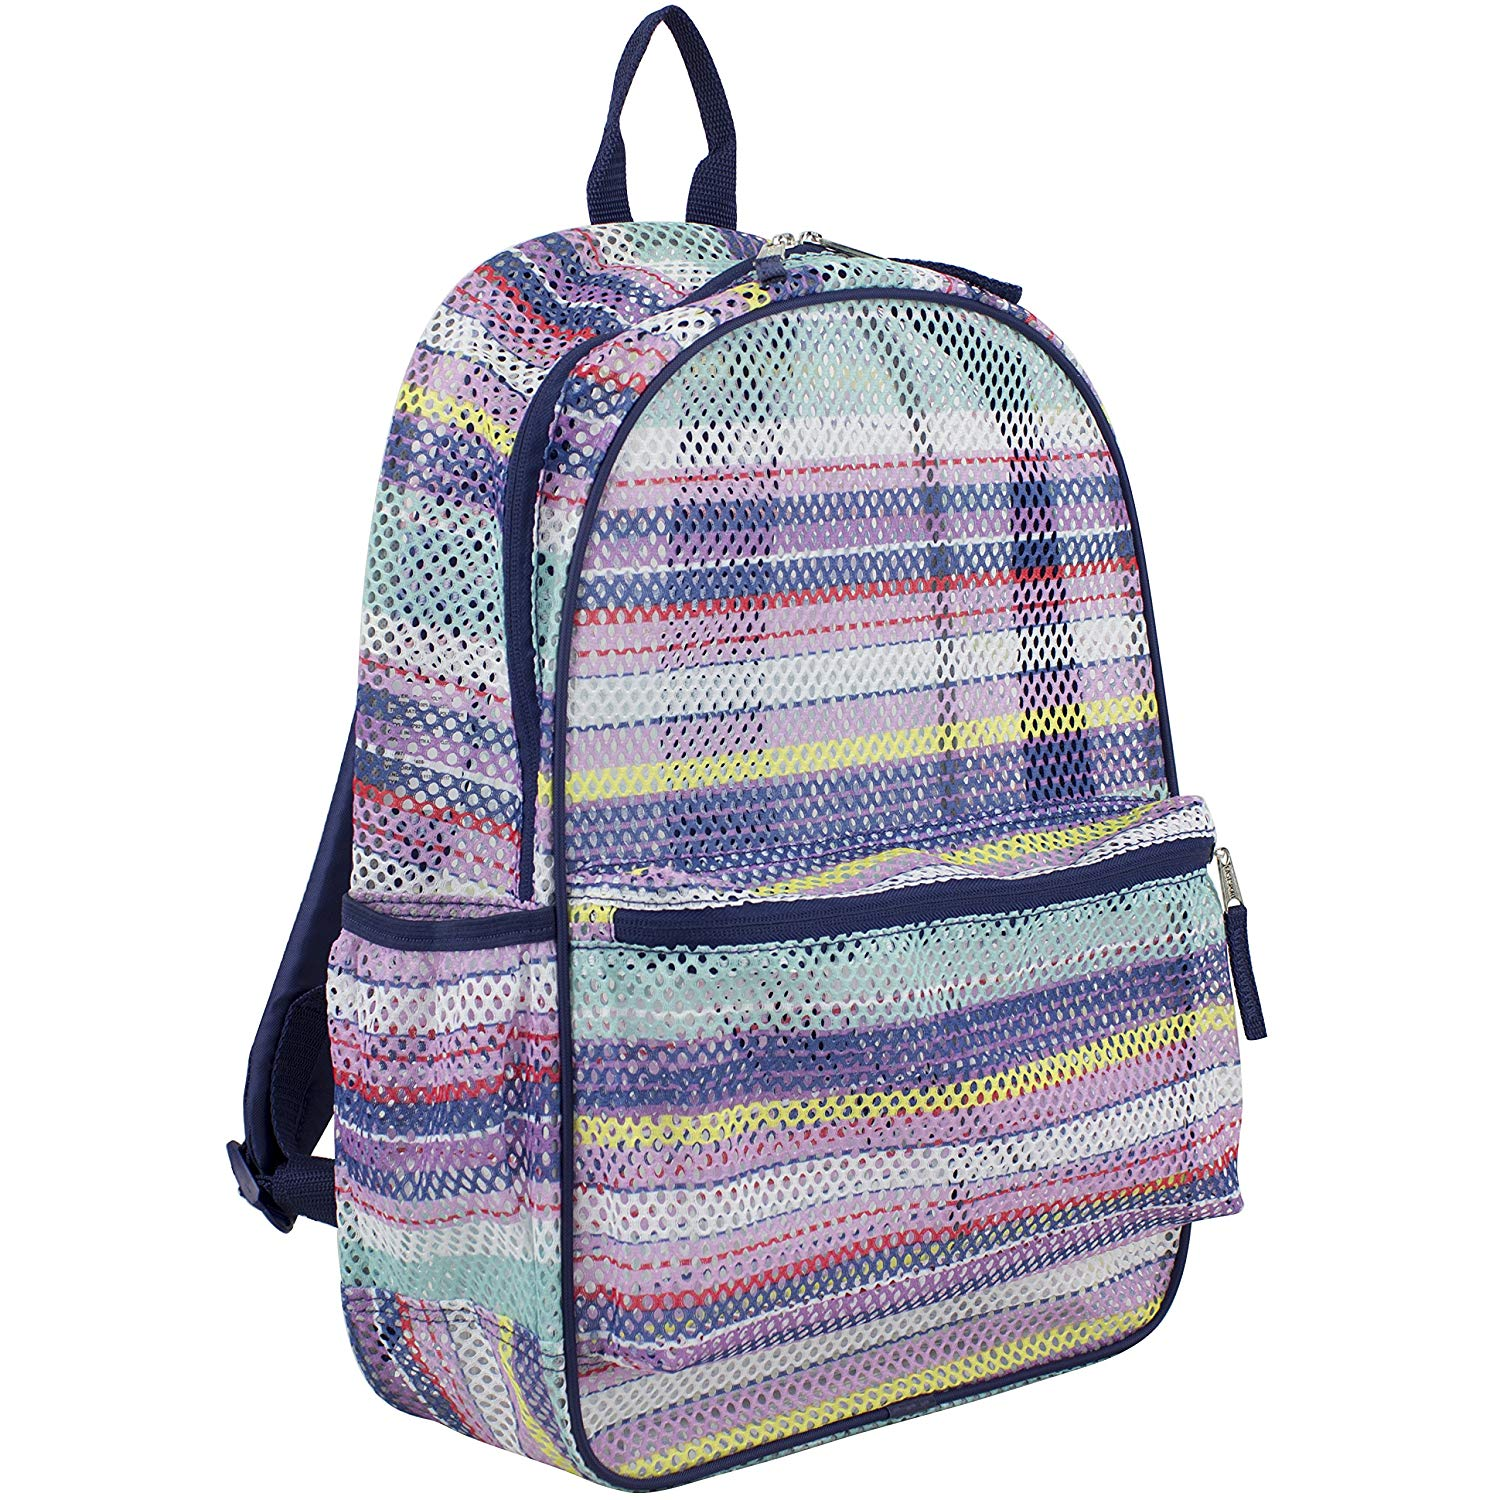 0e57ac82bc Get Quotations · Eastsport Mesh Backpack with Padded Shoulder Straps